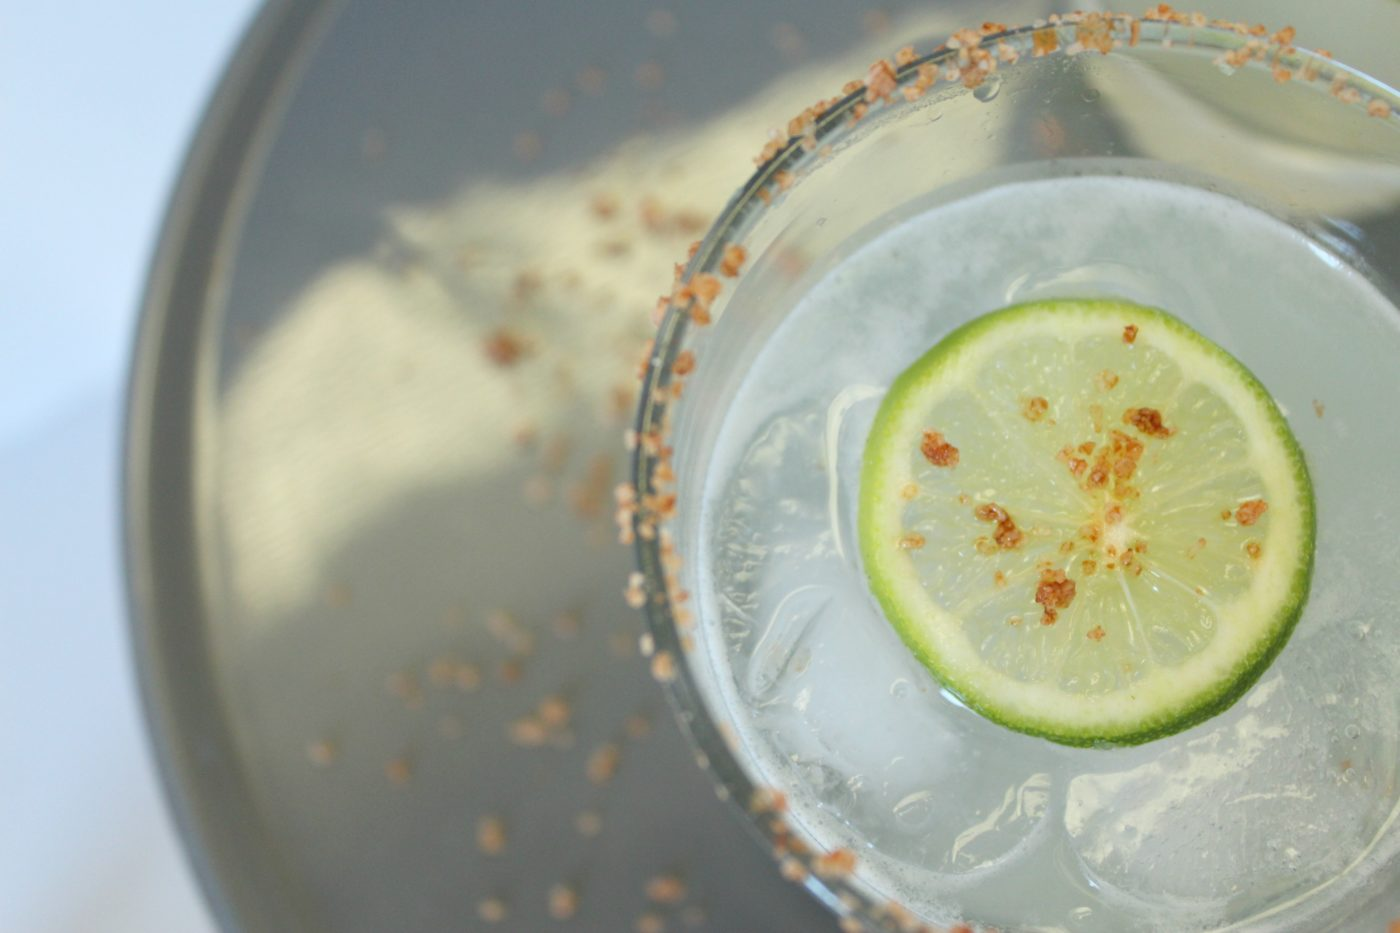 Here's an easy margarita recipe with a bit of a twist on the boring salt rims.